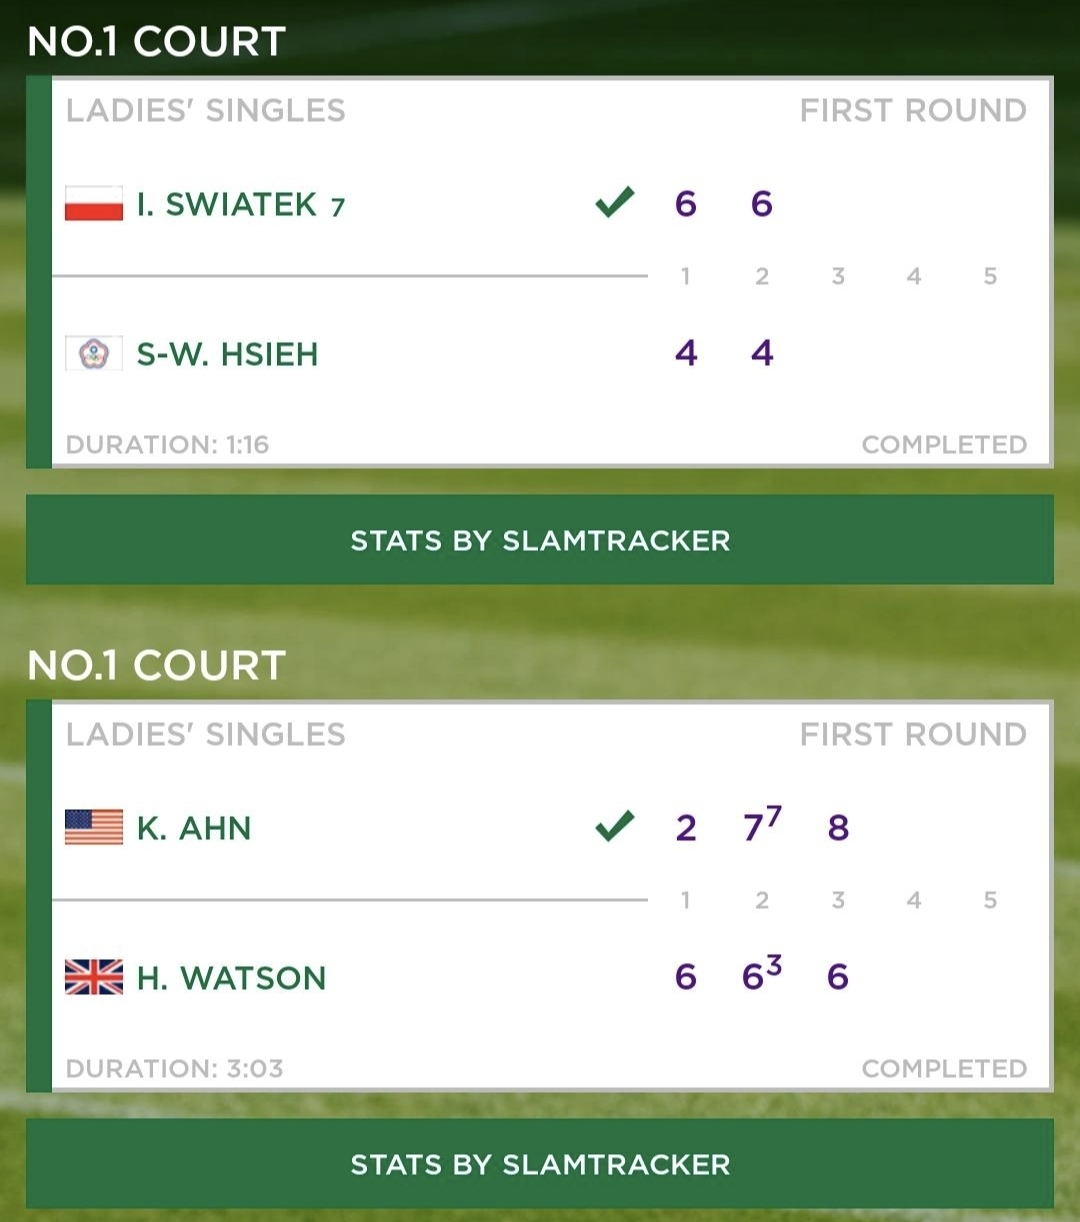 First day's play at Wimbledon at No. 1 Court